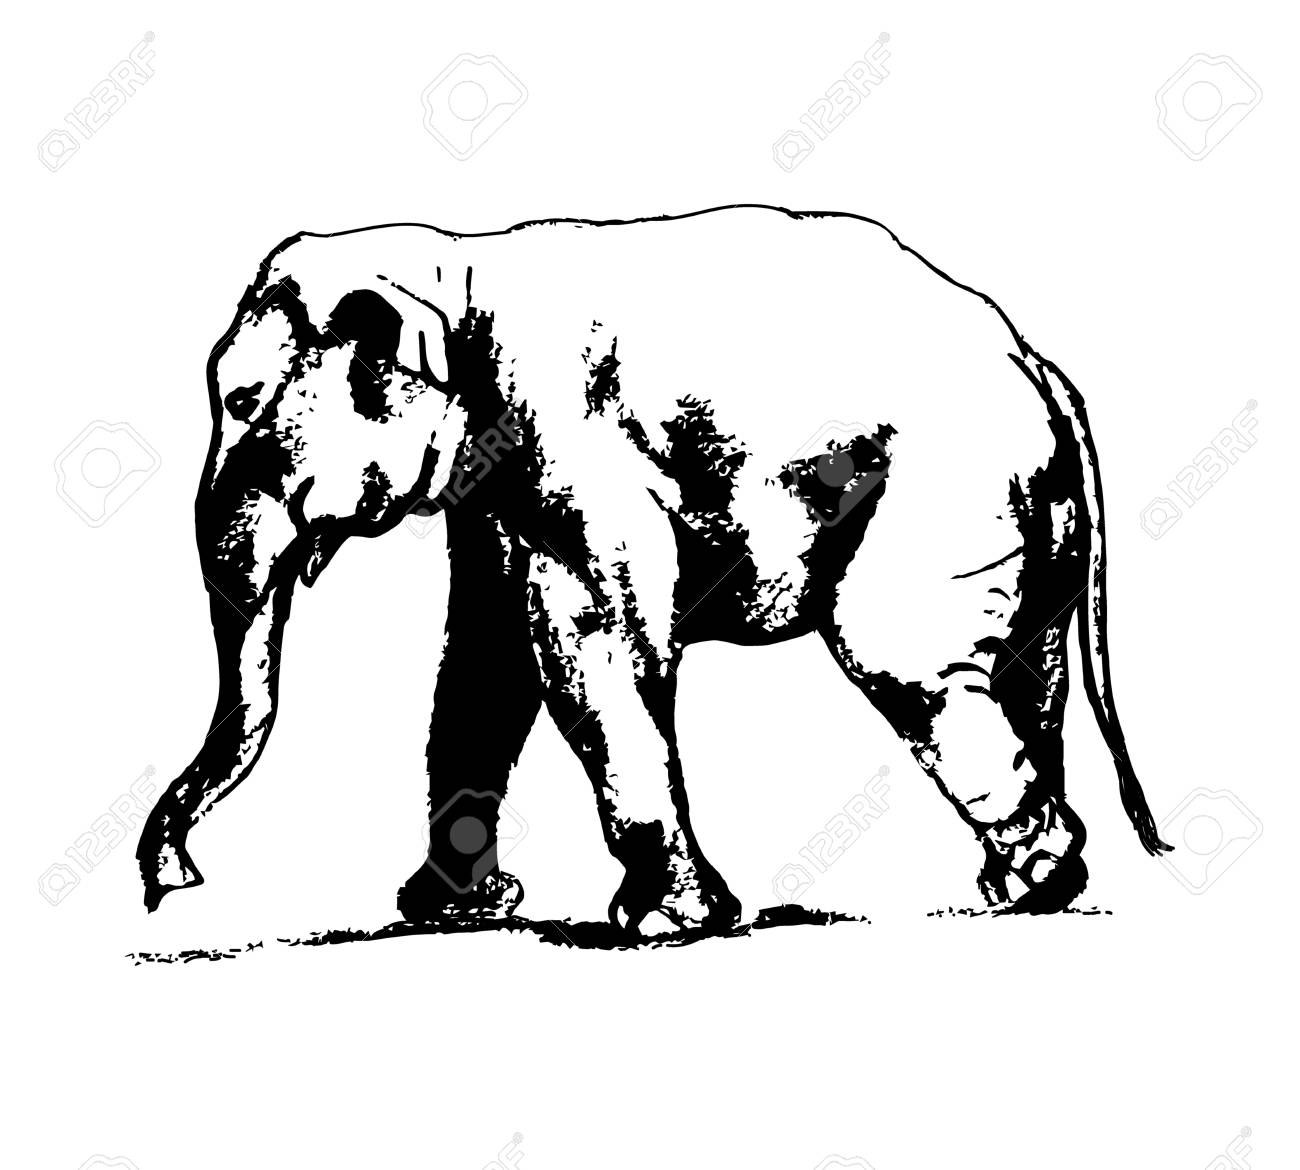 1300x1170 Graphic Design Ofn Elephant. The Image Ofn Elephant On